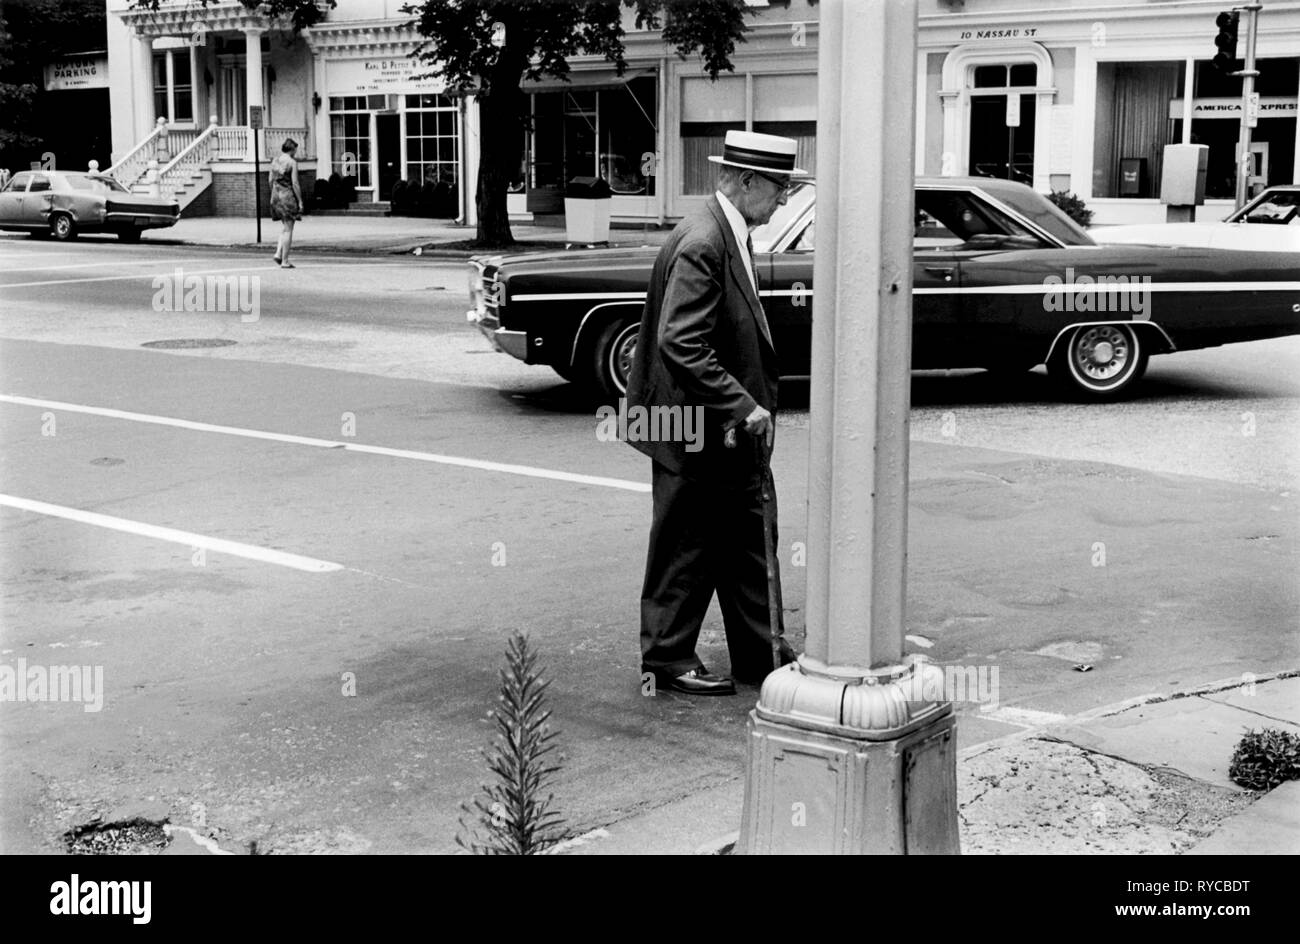 Princeton New Jersey USA 1969. An old man  crosses the street using a walking stick and  wearing a Panama hat Nassau street, 1960s 60's US HOMER SYKES - Stock Image